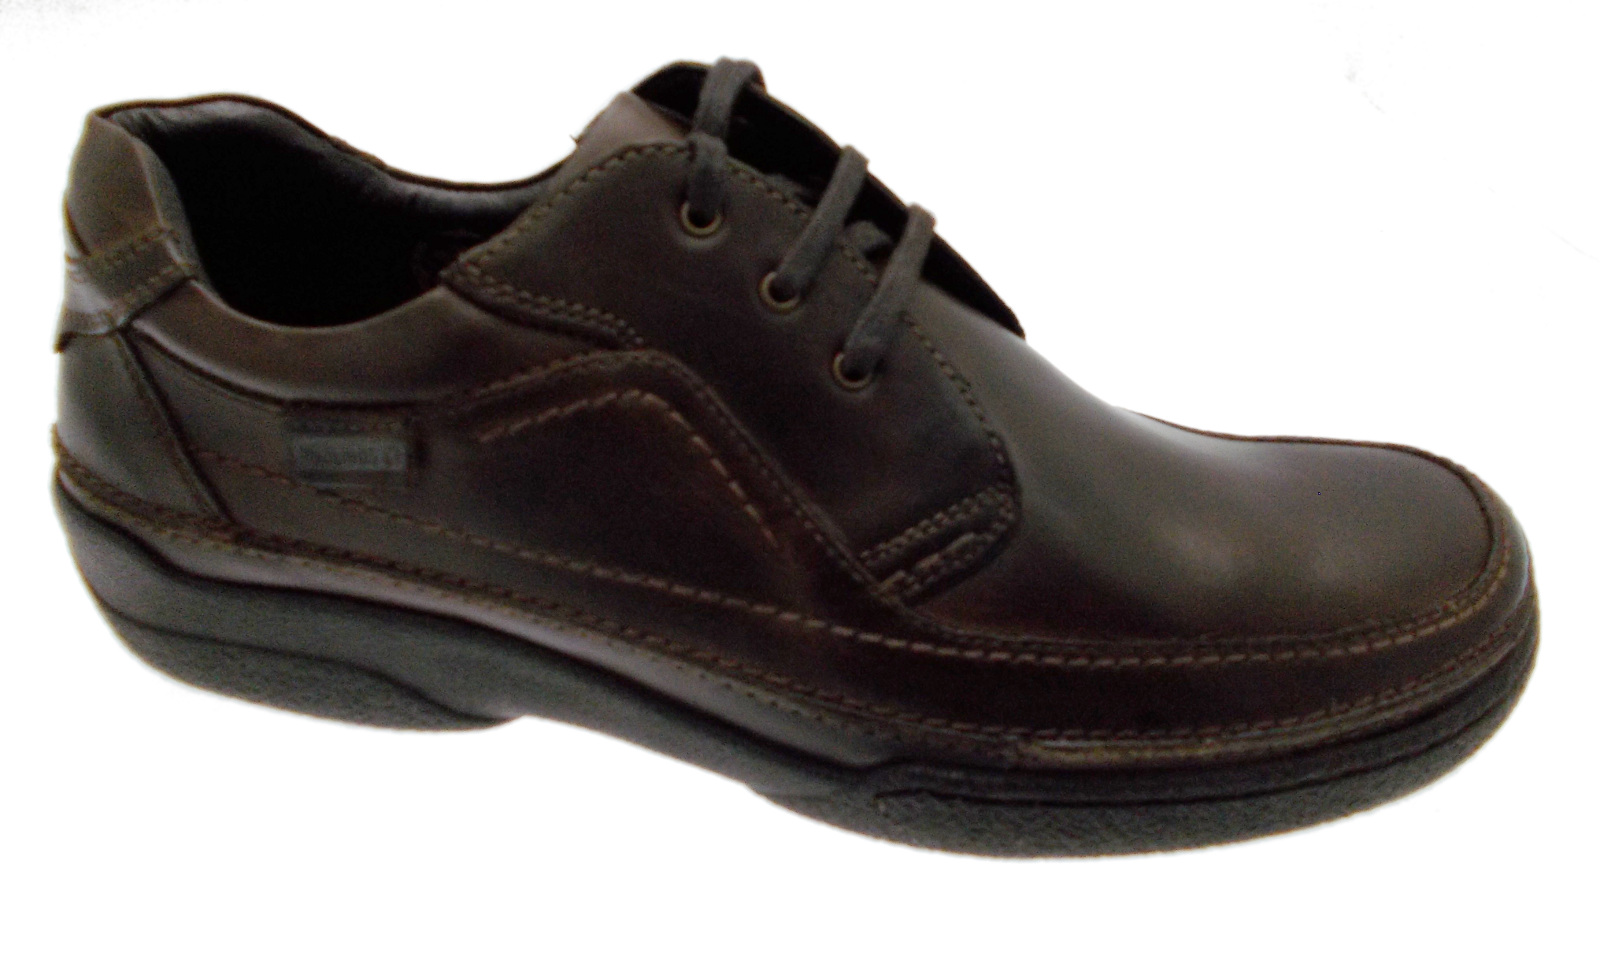 Brown leather laces art 04K-5621 classic shoe man Pikolinos